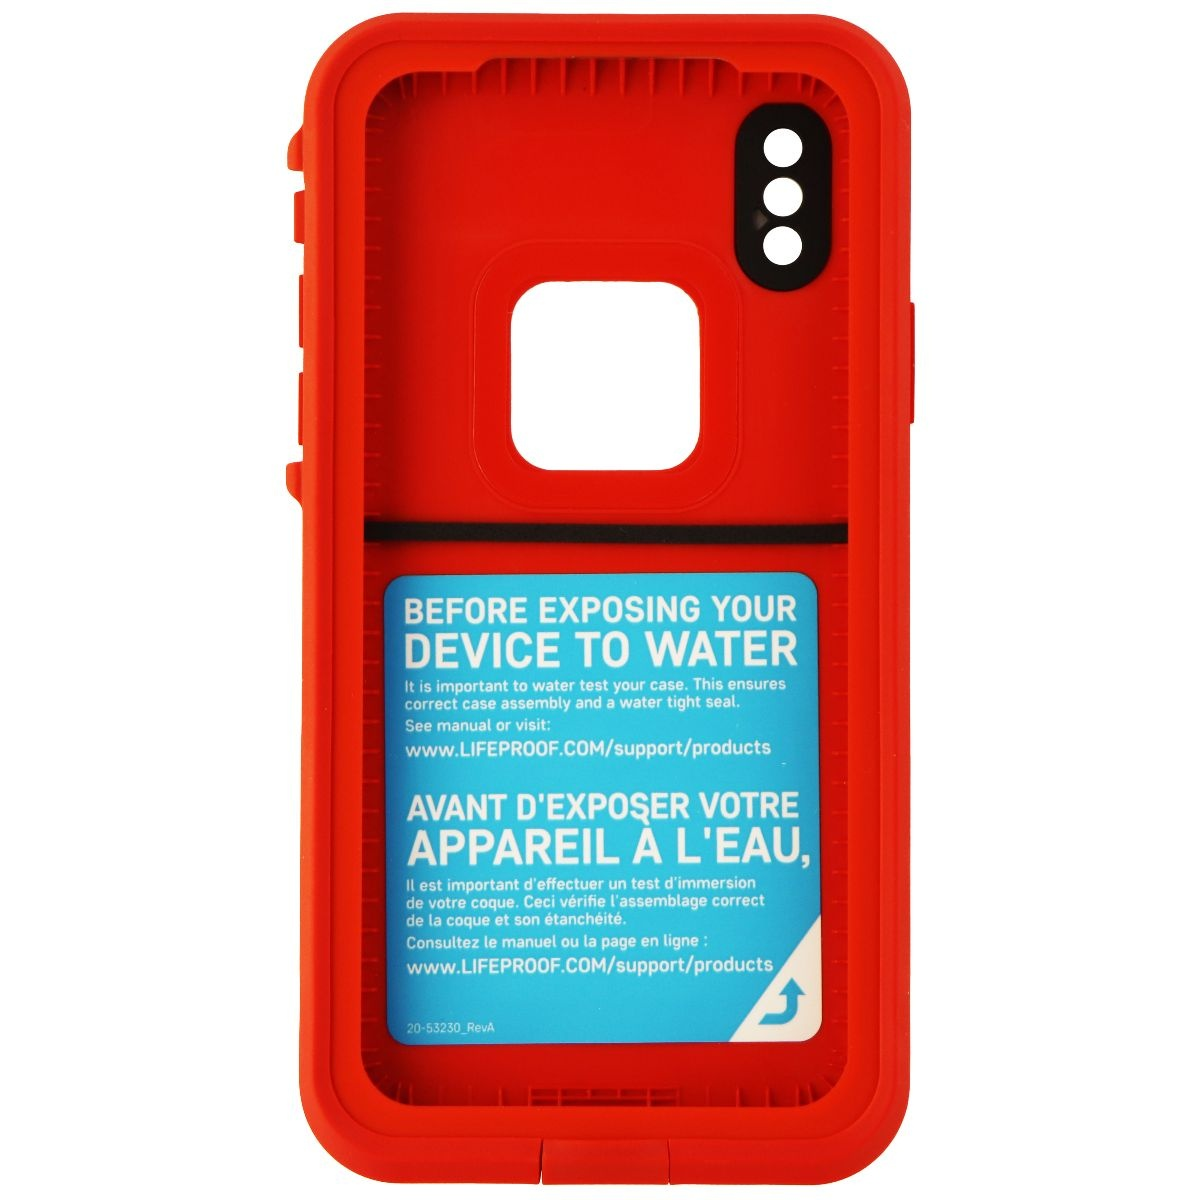 hot sale online a5743 f3ecf Details about Lifeproof FRE Waterproof Case for iPhone X - Fire Run (Cherry  Tomato/Sleet/Molte